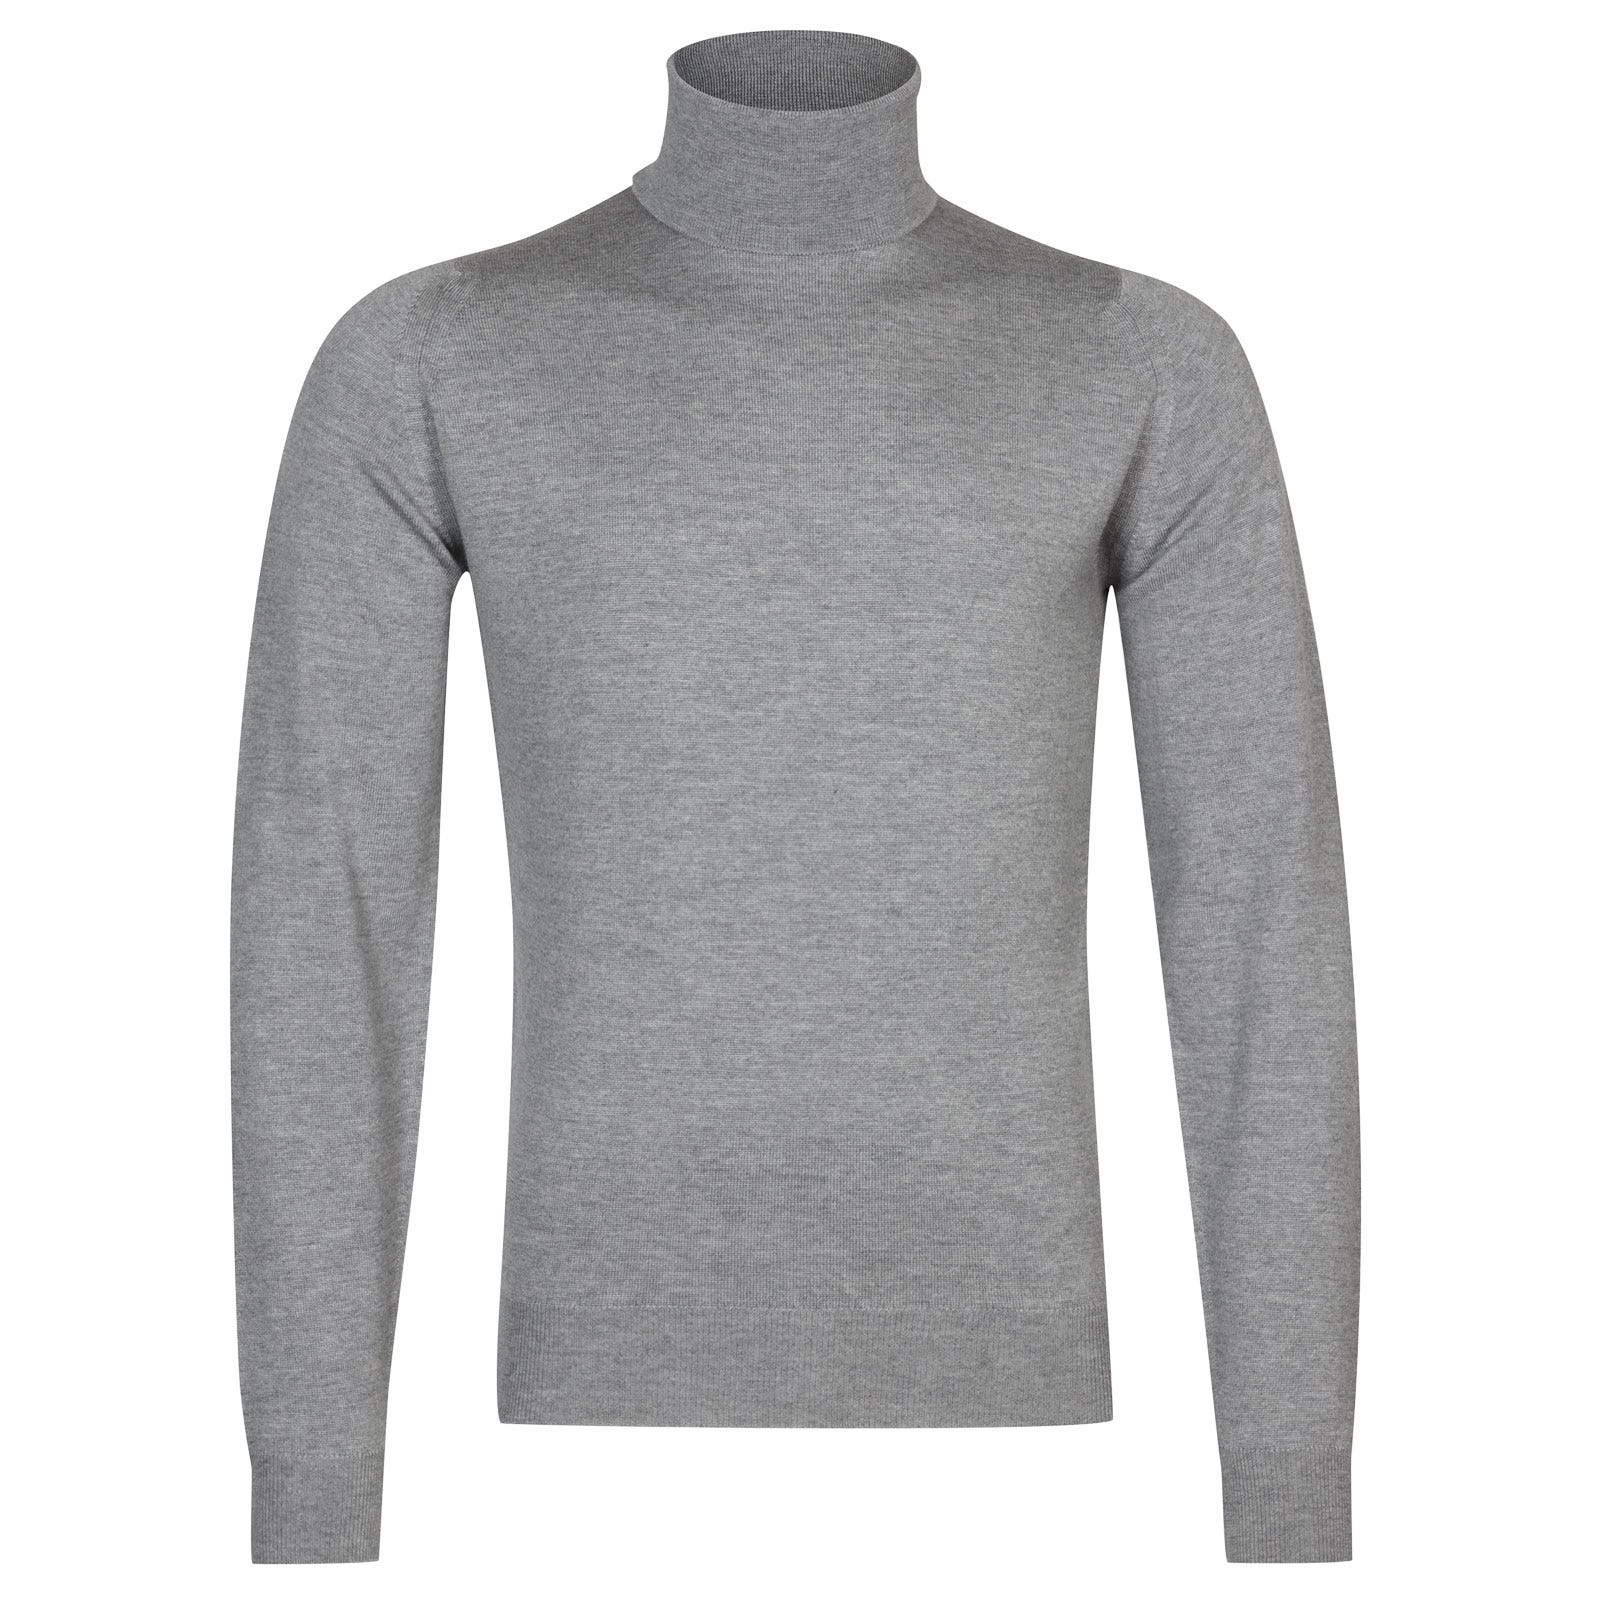 John Smedley connell Merino Wool Pullover in Silver-XL